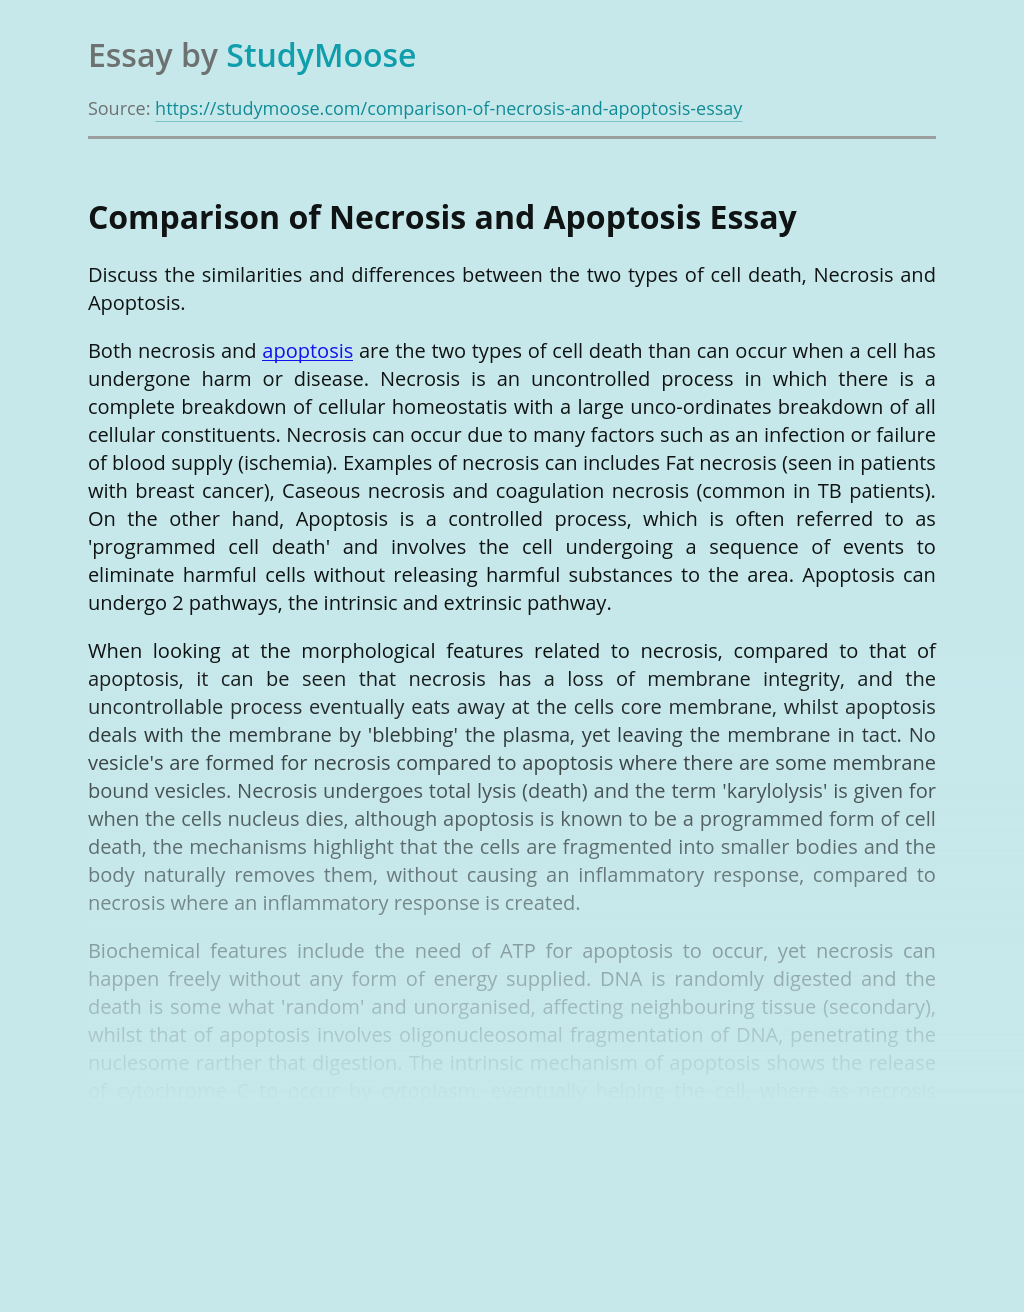 Comparison Cell Death of Necrosis and Apoptosis